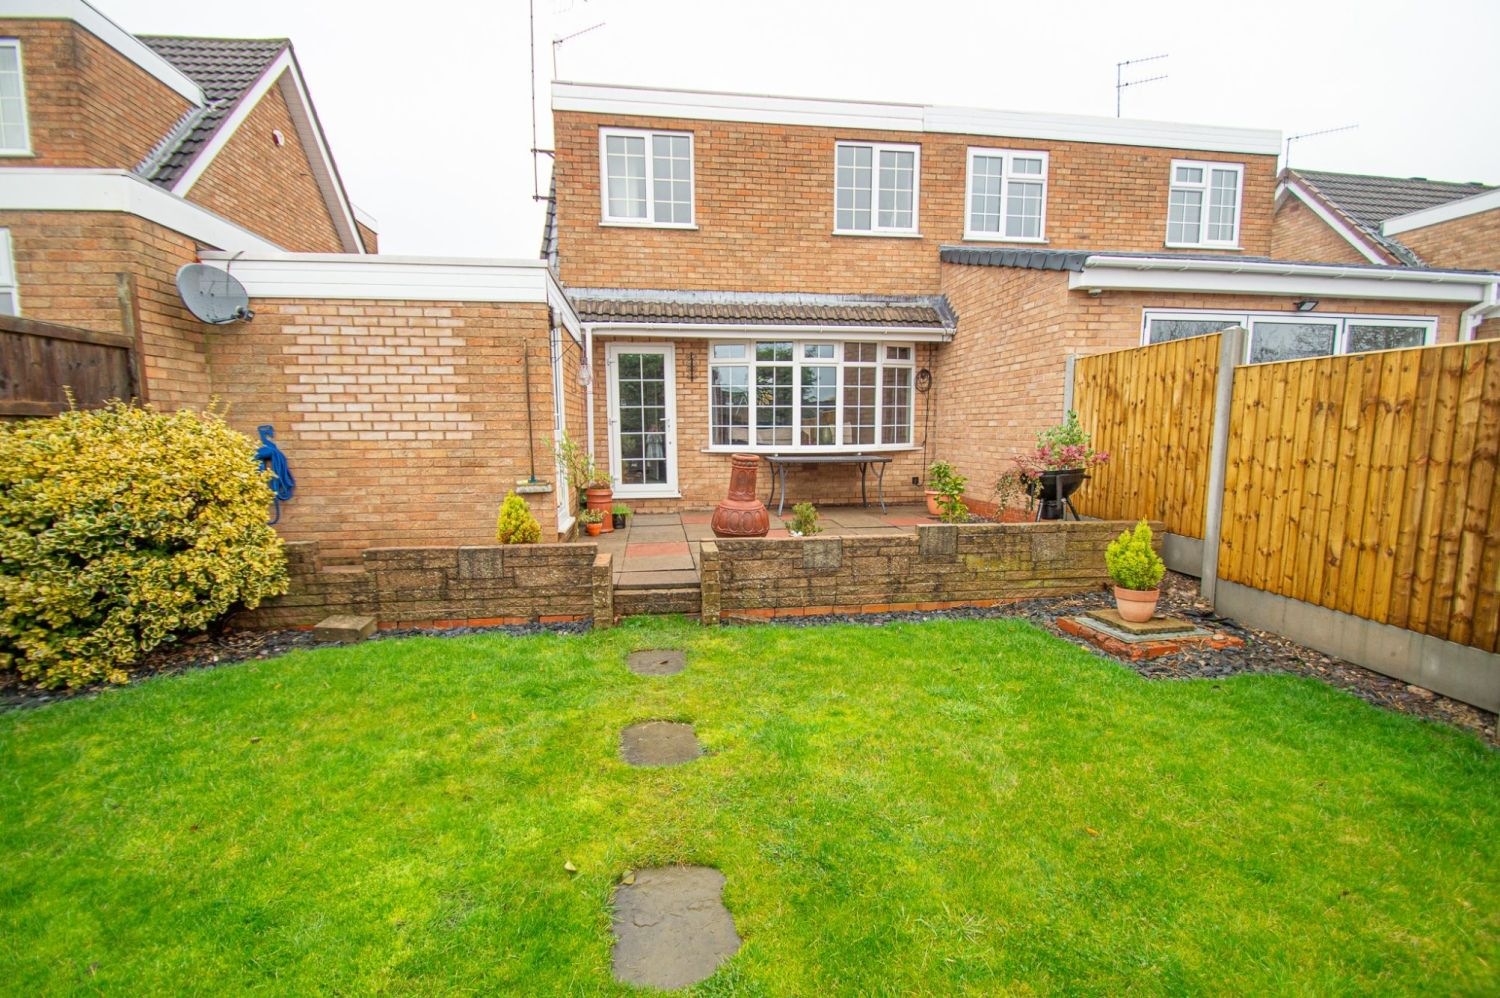 2 bed semi-detached for sale in Woburn Drive, Halesowen  - Property Image 16